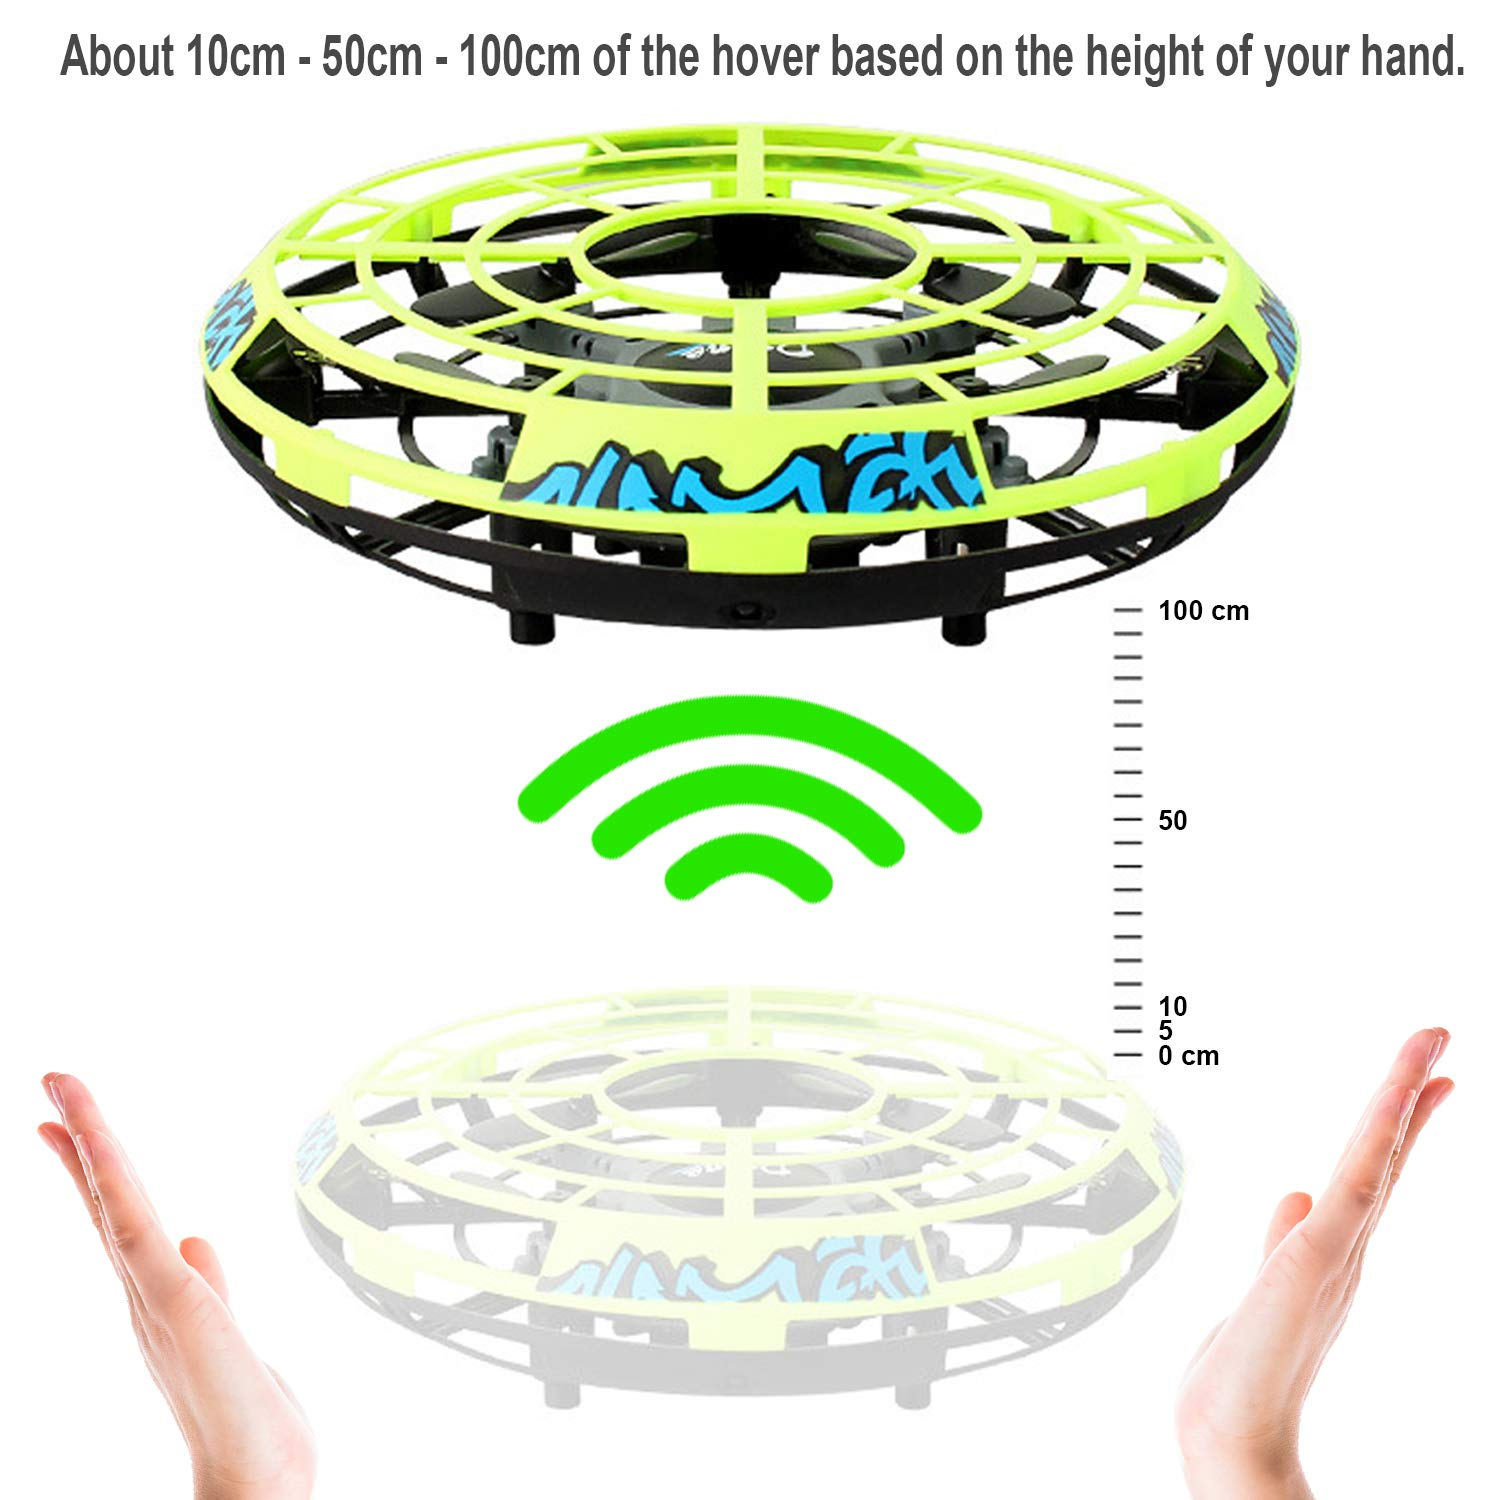 Flying Ball RC Mini Drone Flying Toys Birthday Gifts for Kids Boys Girls Airplane UFO Shape Outdoor Play Toys Remote Control Interactive Infrared Induction Helicopter Flying Saucer Toys 360° Rotating by TURNMEON    (Image #6)